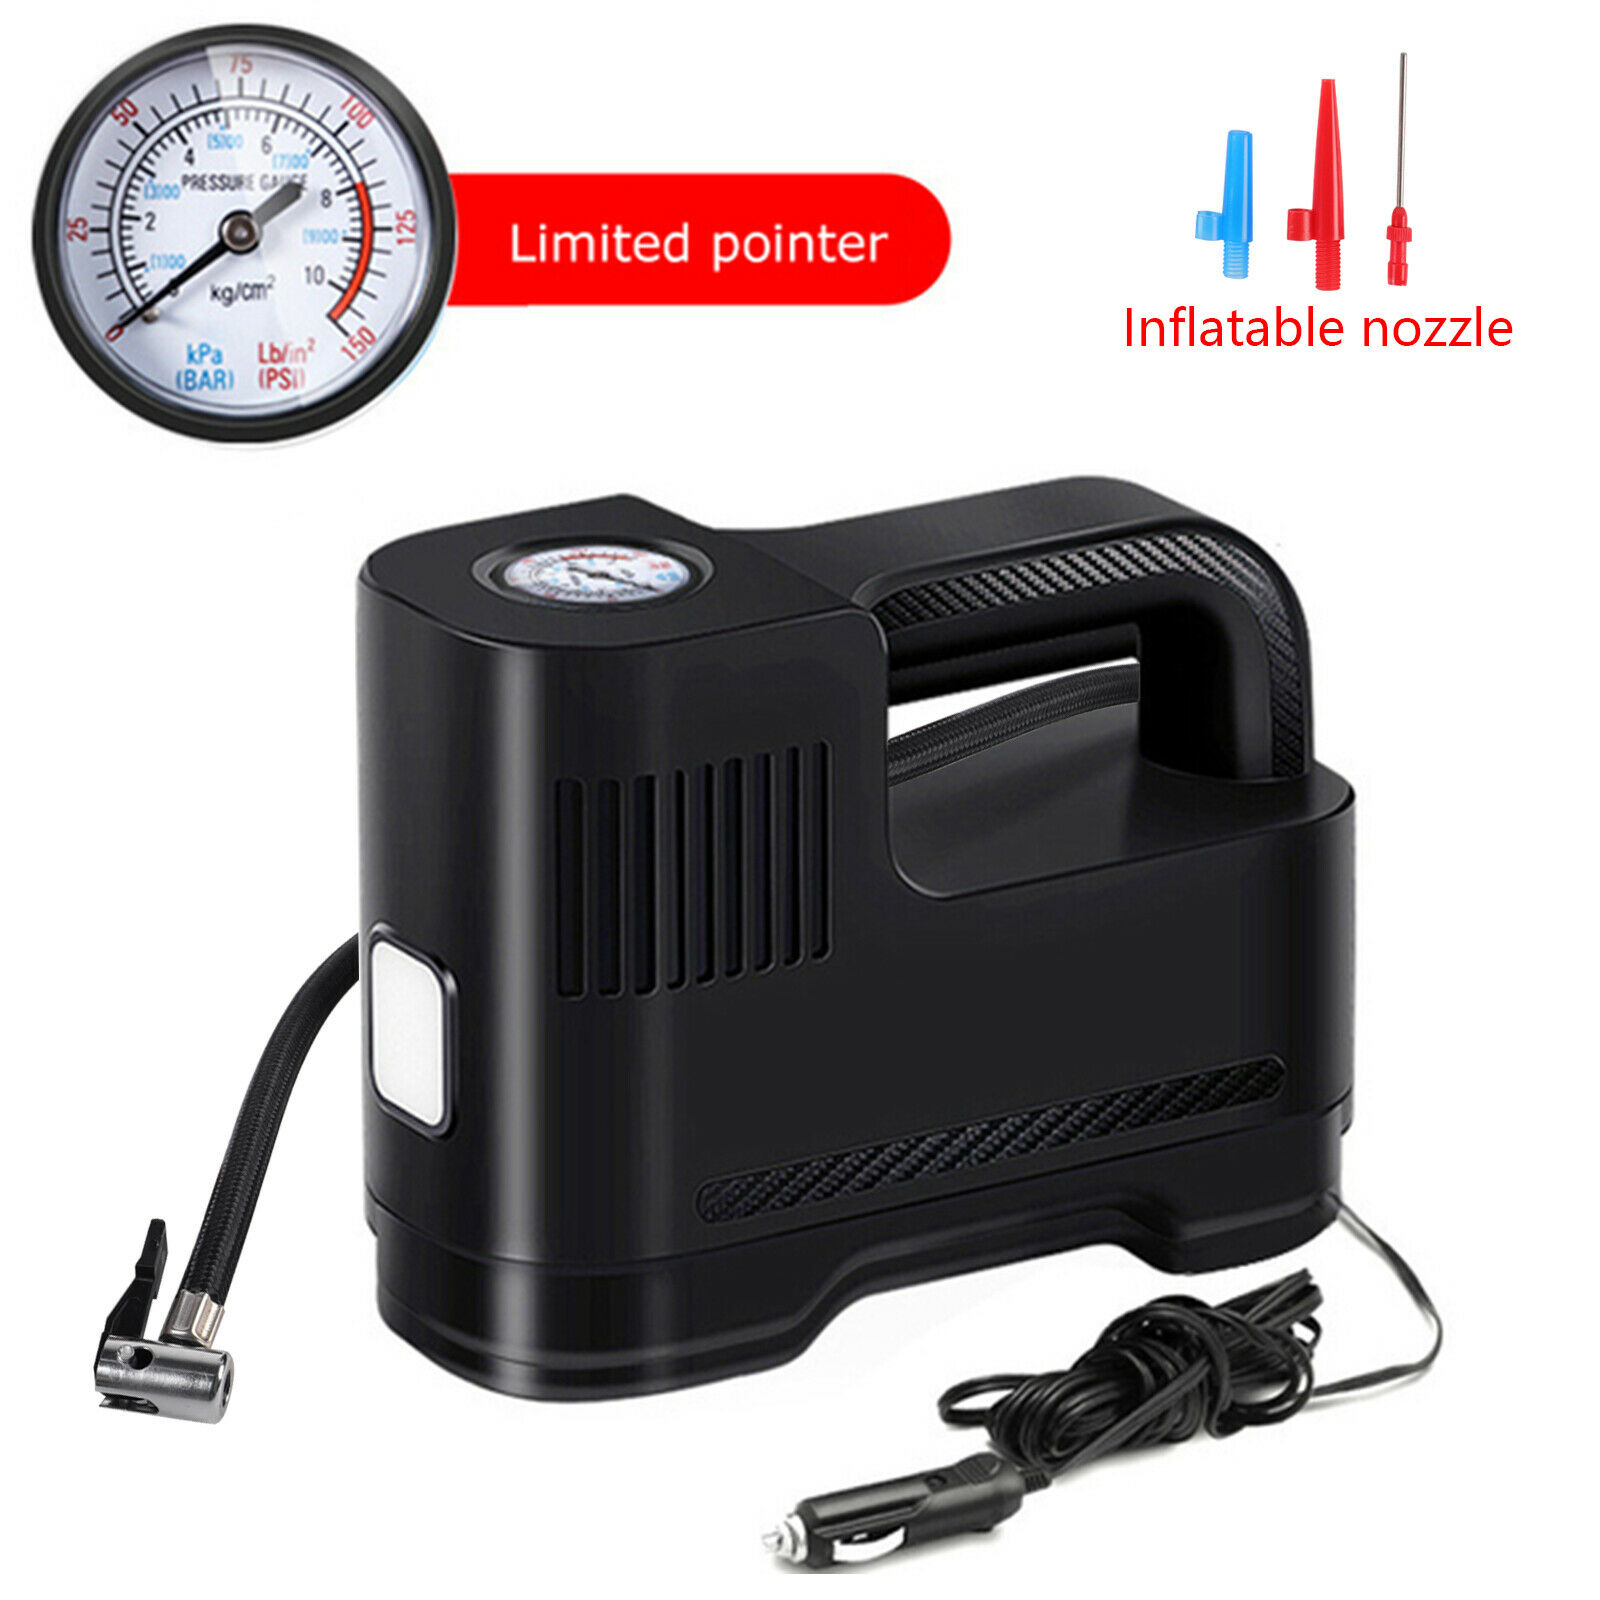 12V Car Tire Inflator Portable 150 PSI Air Pump Compressor Auto-off w/ LED Light. Available Now for 18.99